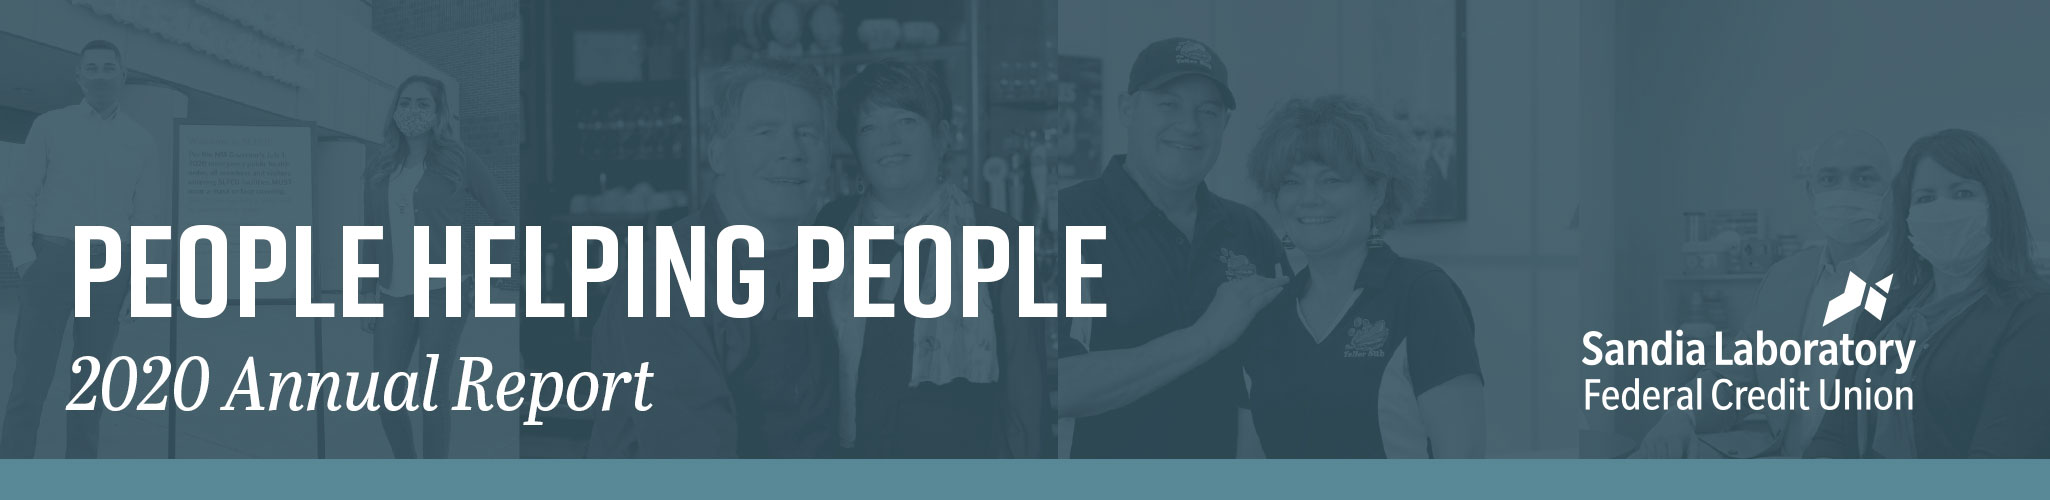 2020 Annual Report: People Helping People